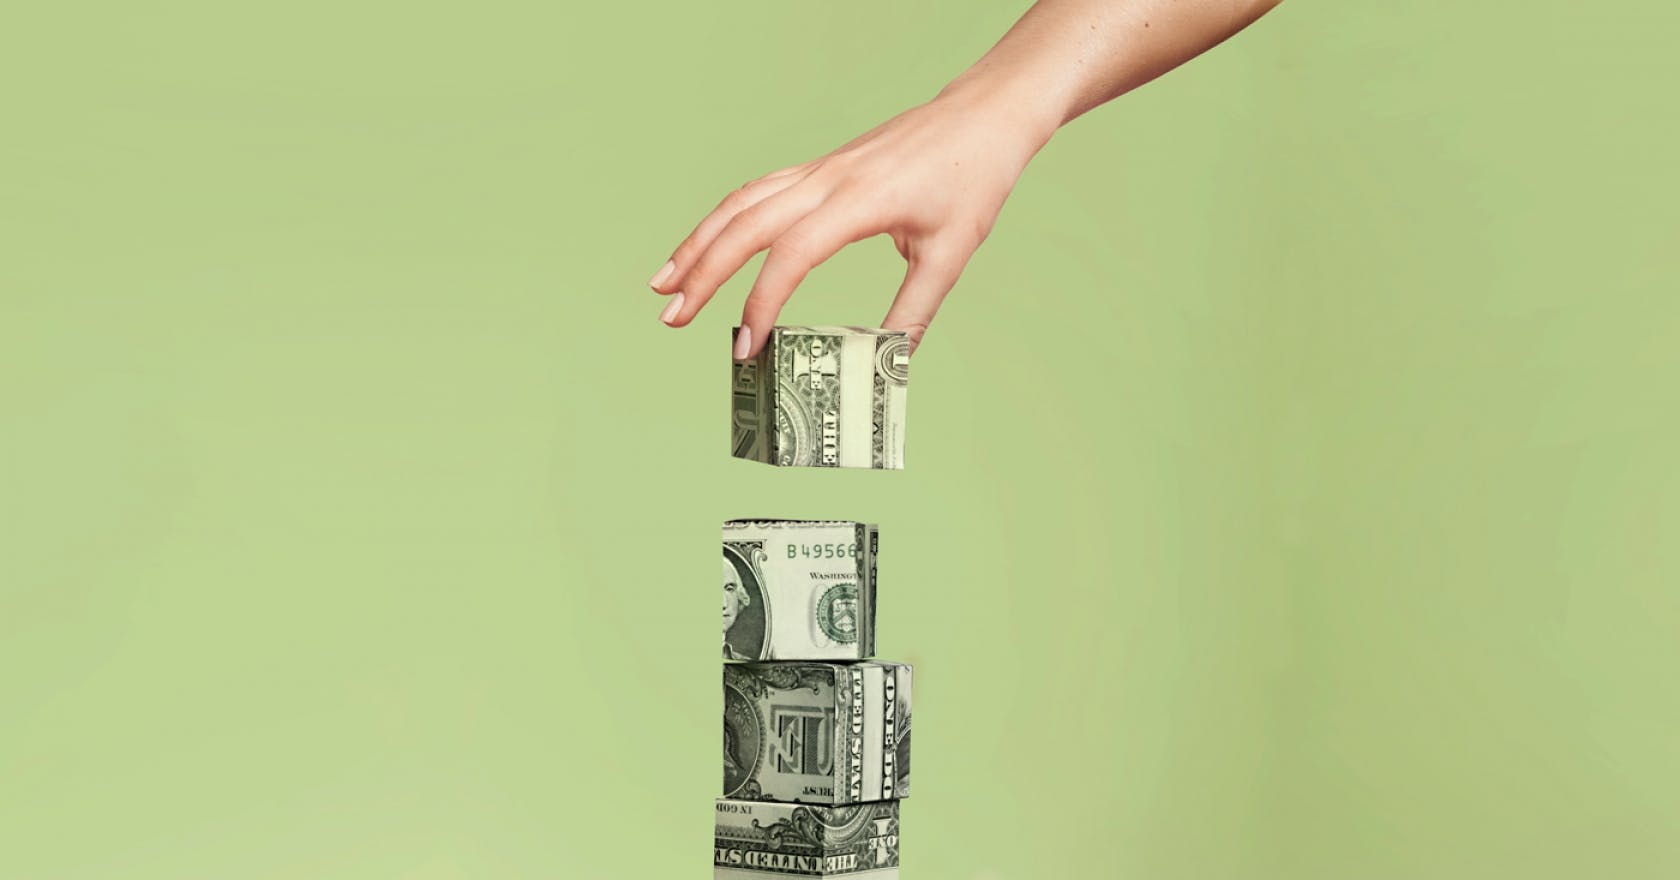 4 money experts share their big finance tips for 2021